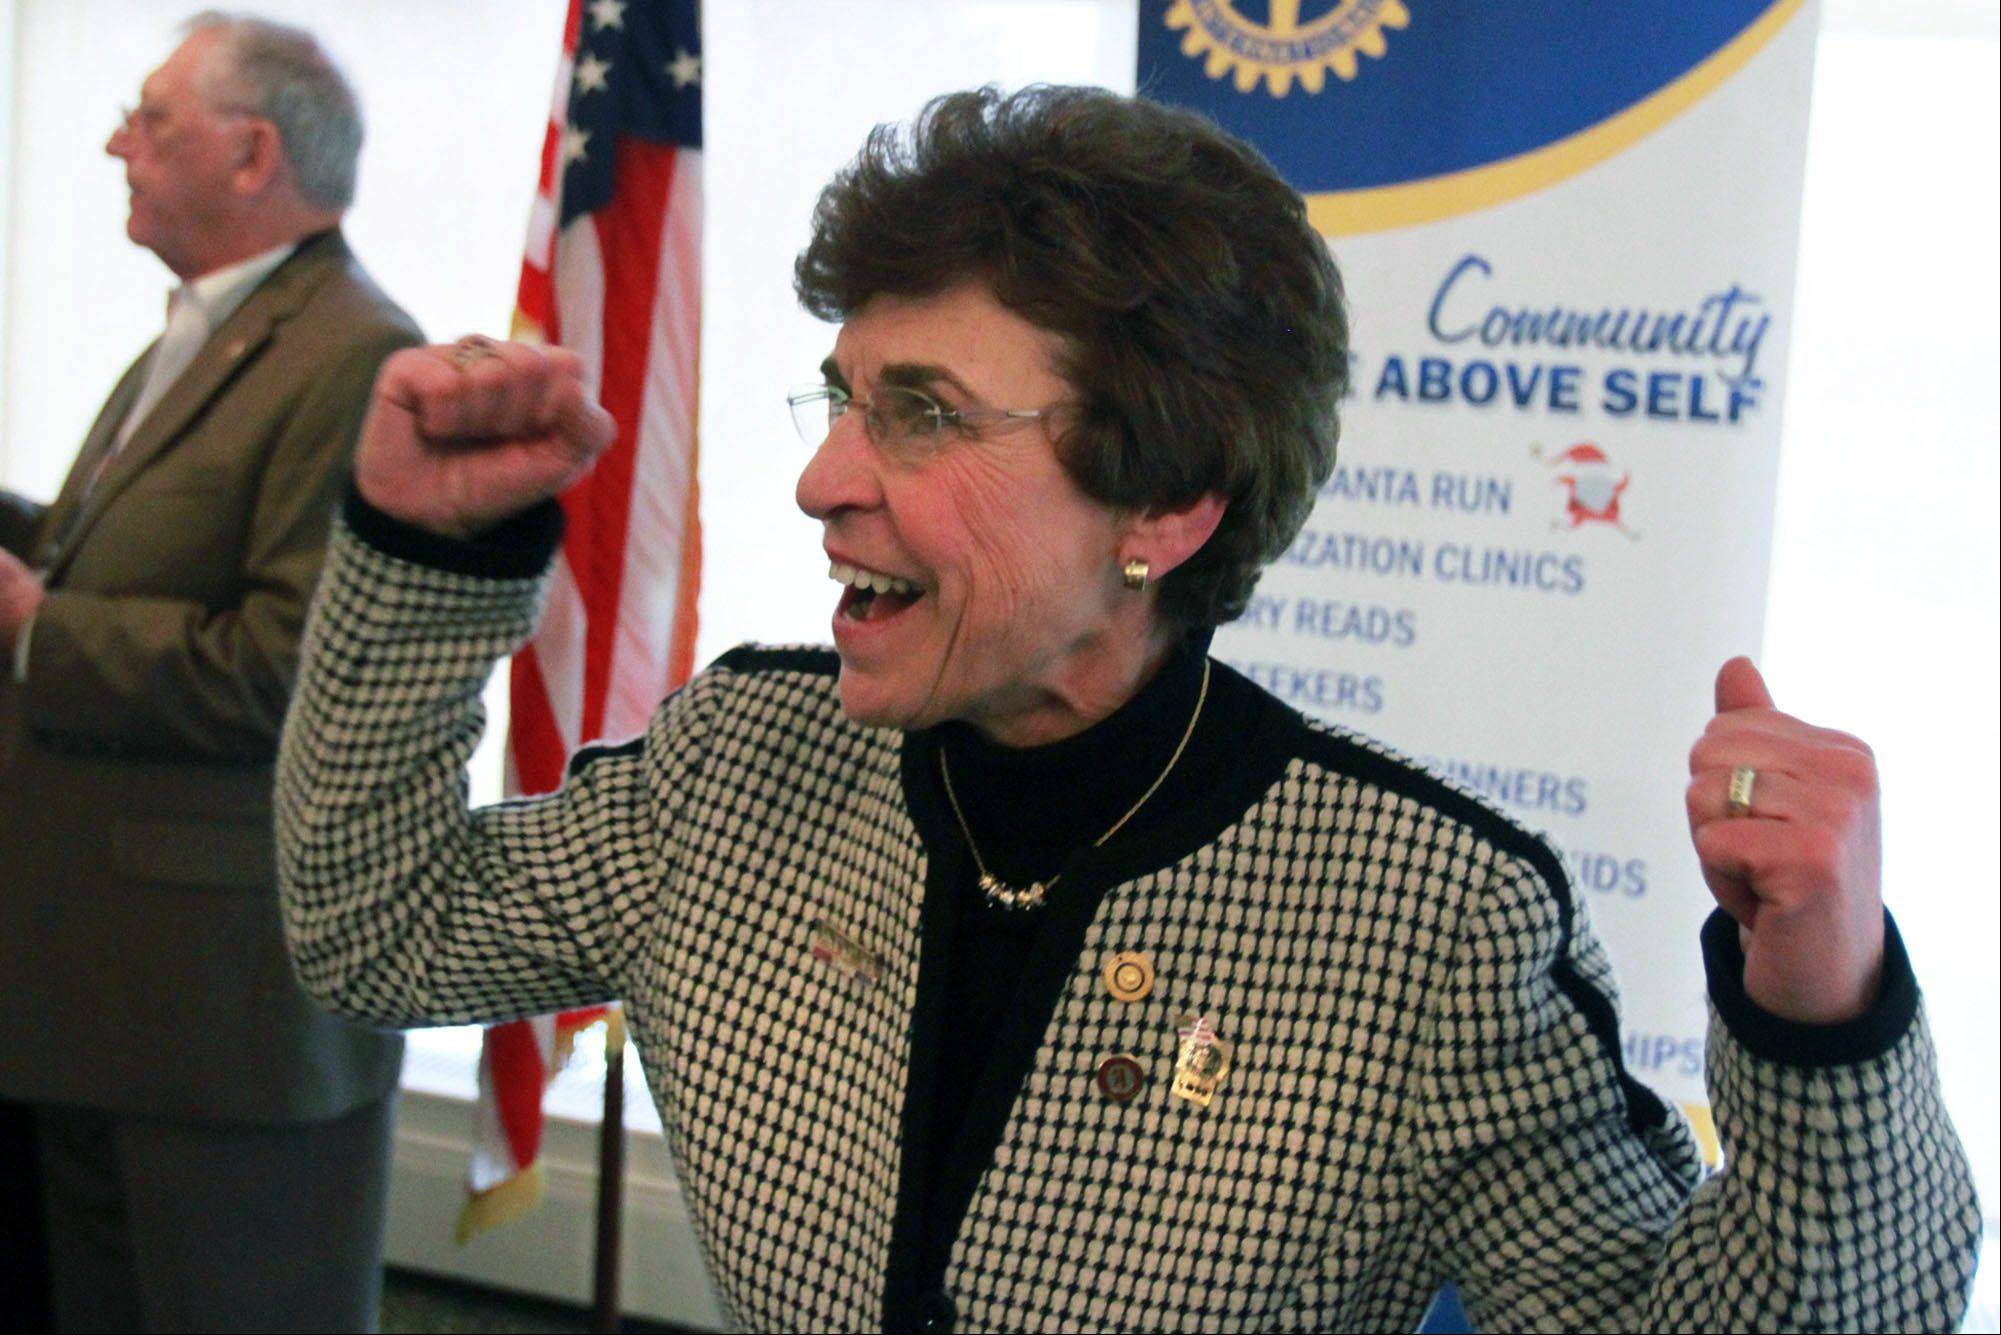 Mayor Arlene Mulder leads a cheer at the Rotary luncheon.